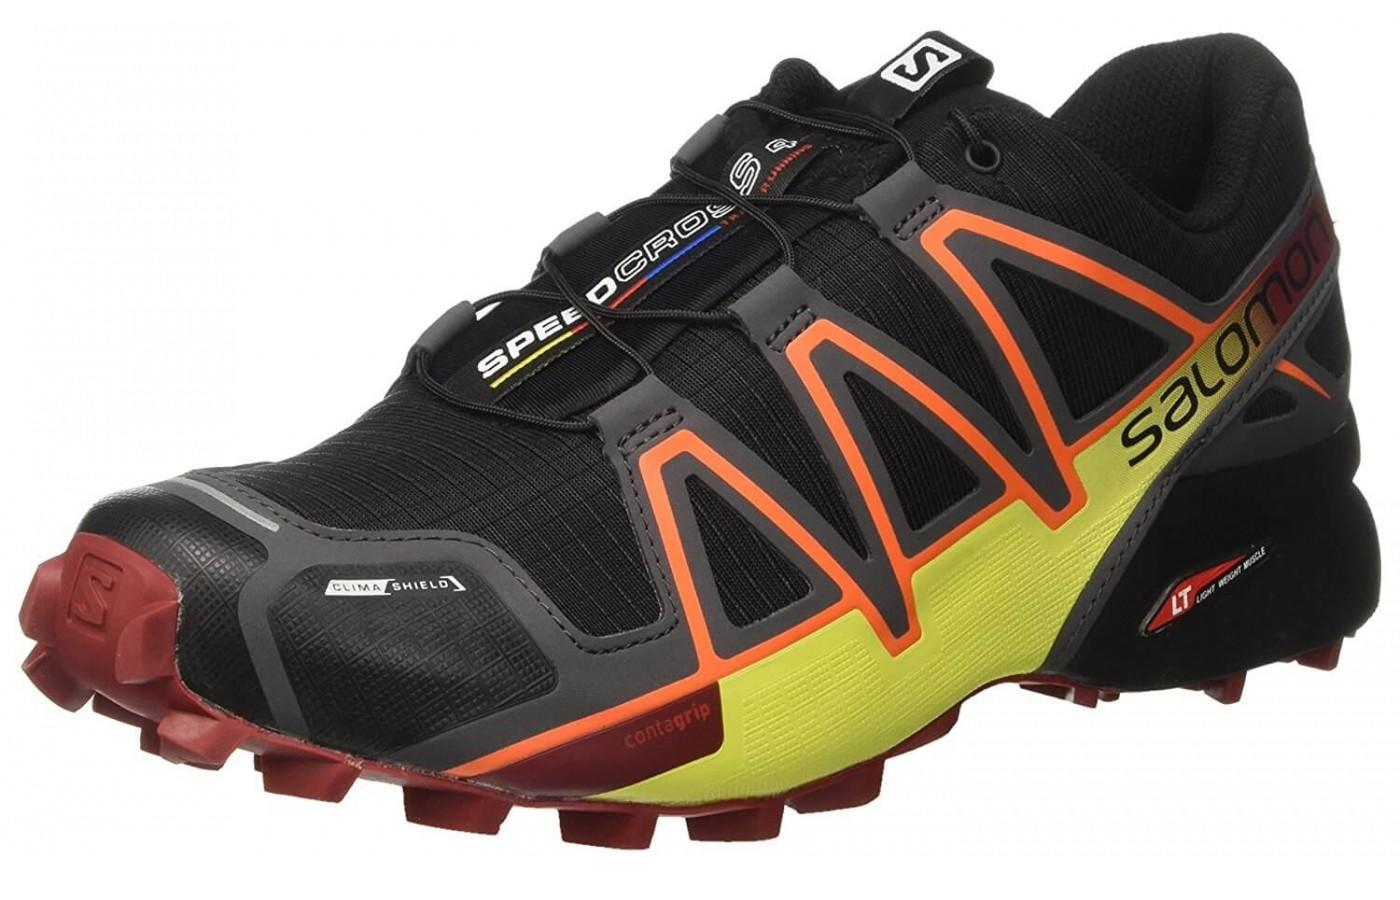 The Salomon Speedcross 4CS is a durable trail running shoe for the outdoor adventurer.